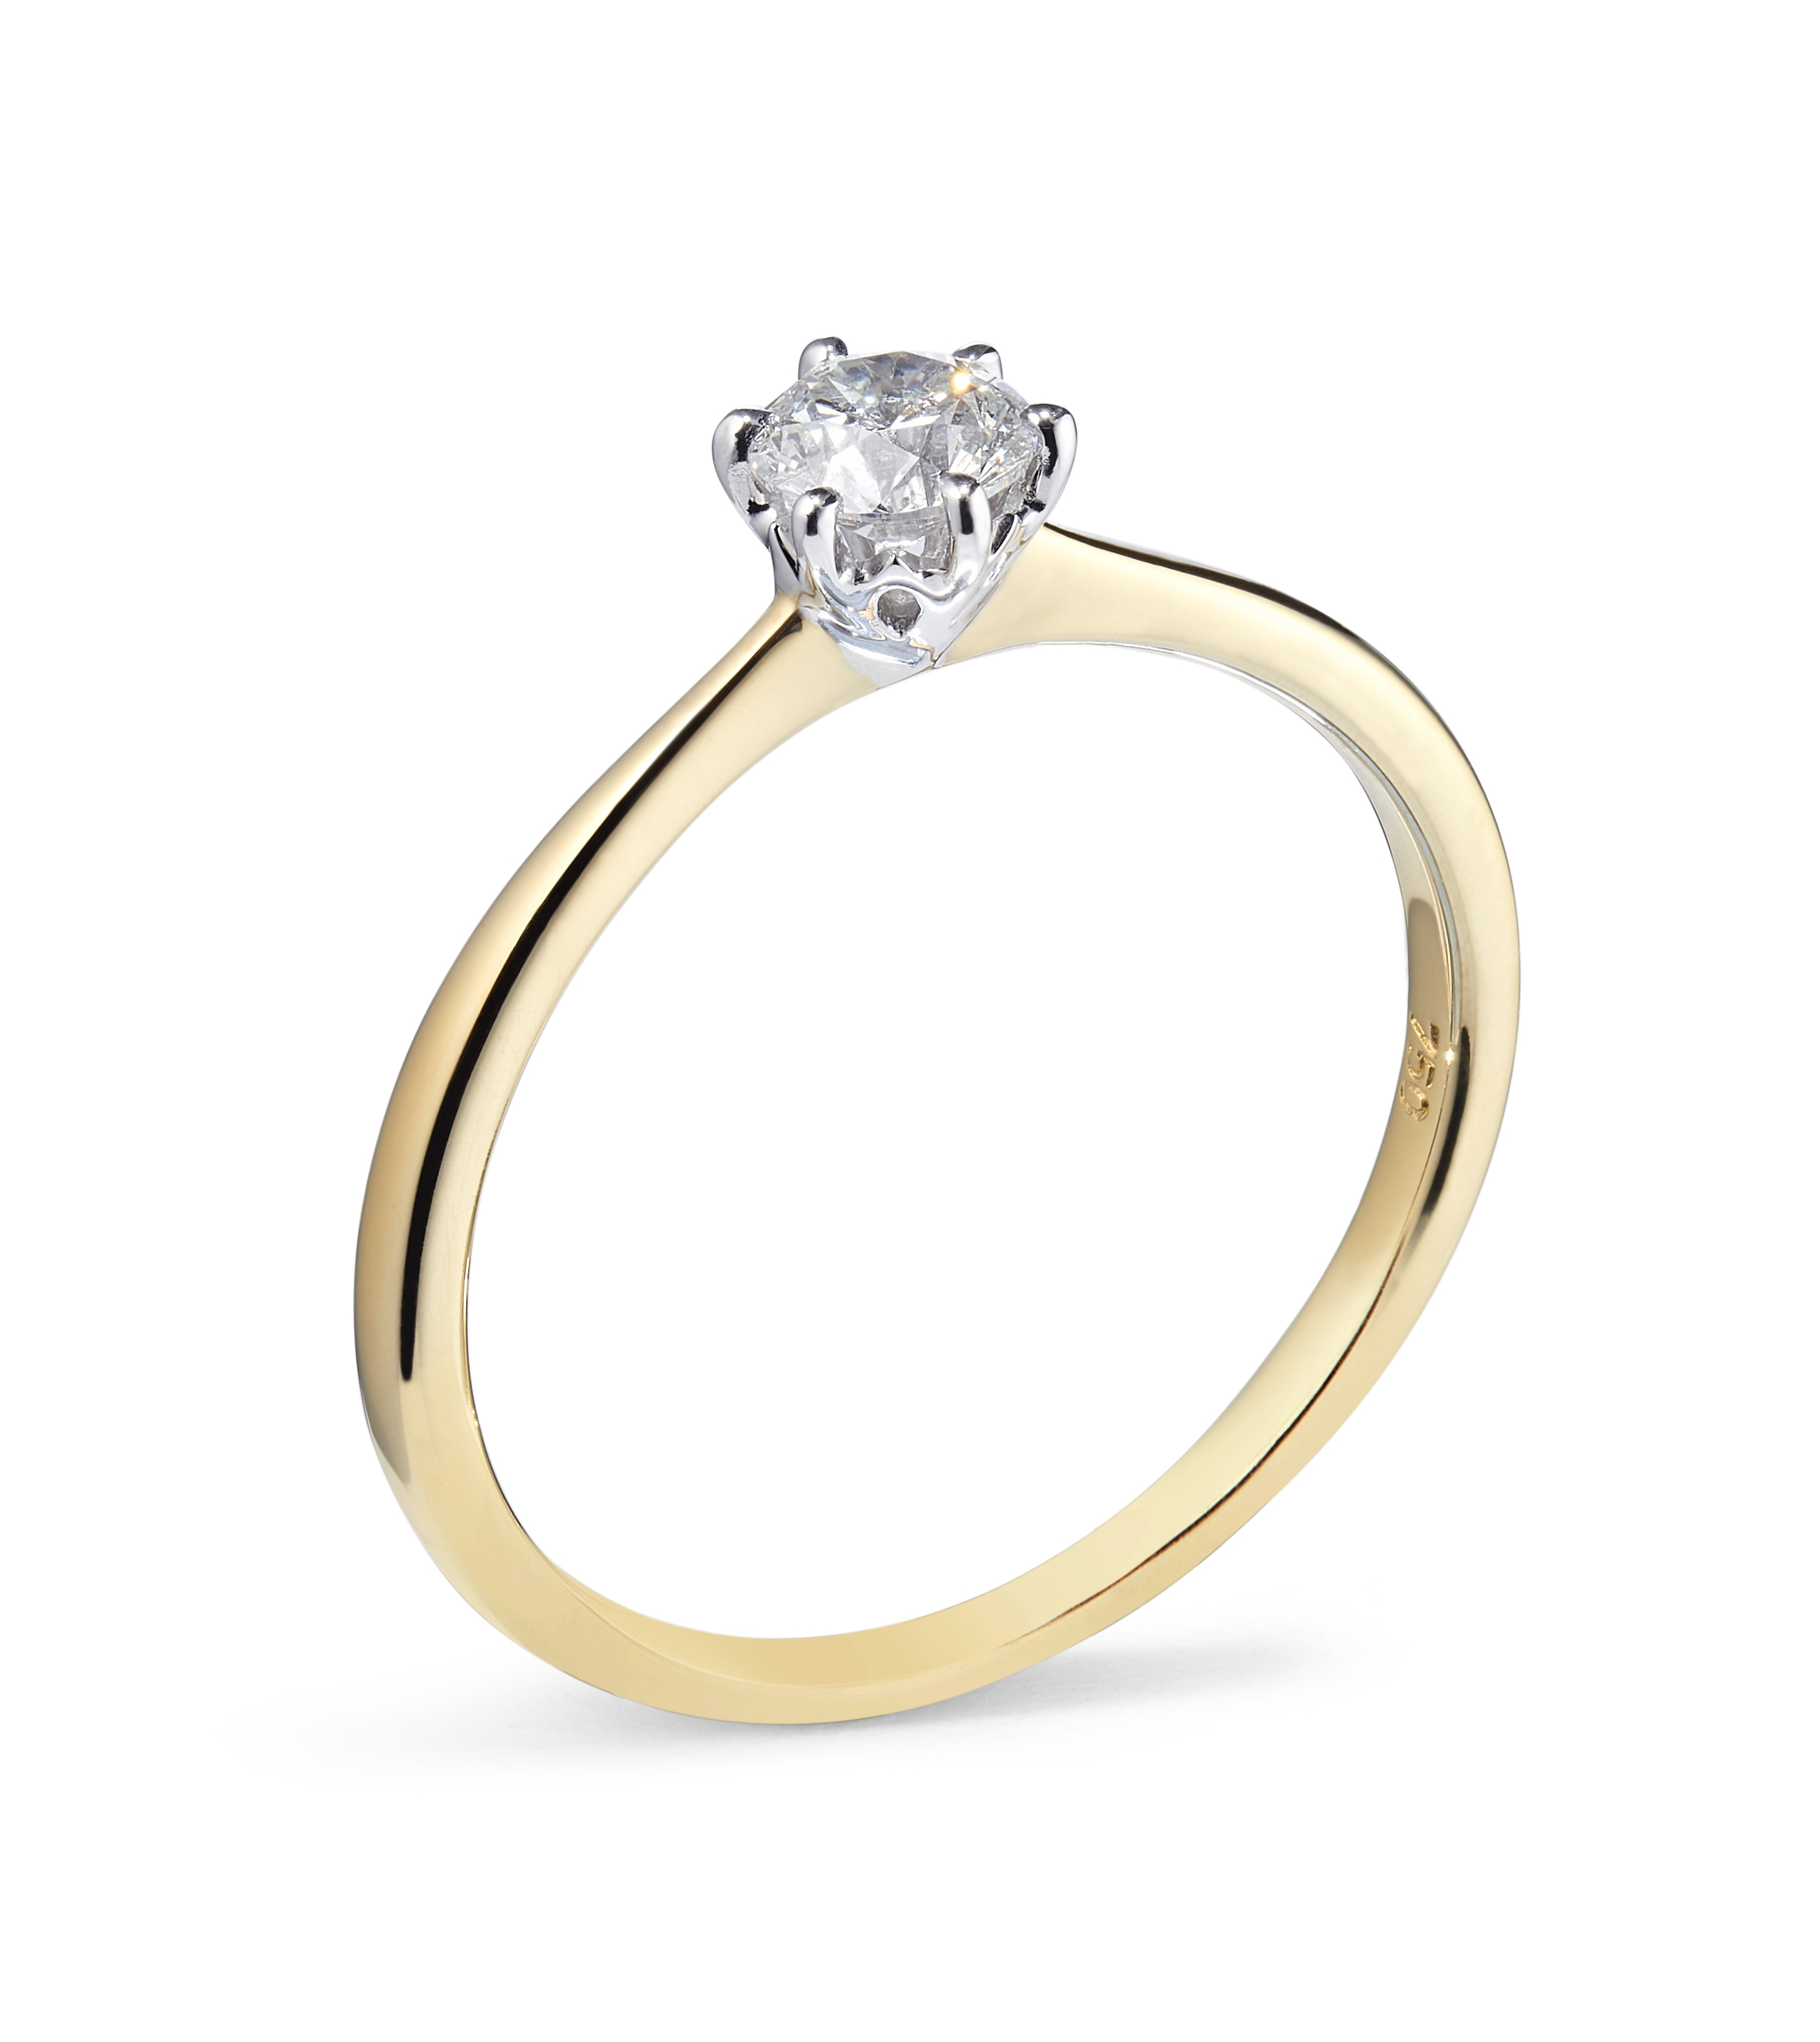 0.32ct Six Claw Solitaire Ring in 18ct Yellow and White Gold